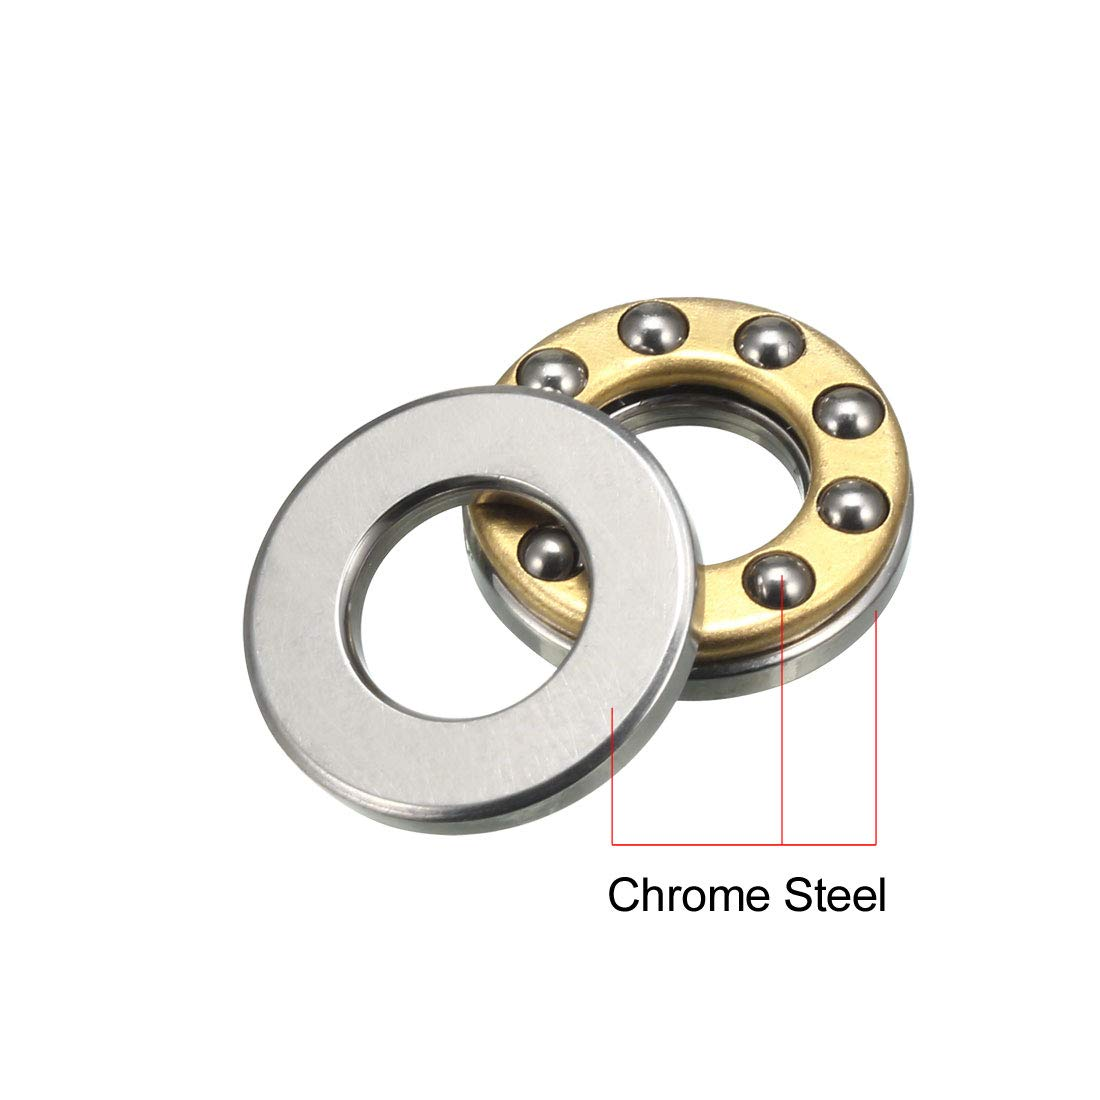 1.812 Base To Height 1-3//8 Bore 2.22 Length Through Bore Ductile Housing Wide Inner Race 1-3//8 Bore Eccentric Locking Collar 2.22 Length Through Bore Normal Duty Low Shaft Height Relube Hub City PB220DRWX1-3//8 Pillow Block Mounted Bearing